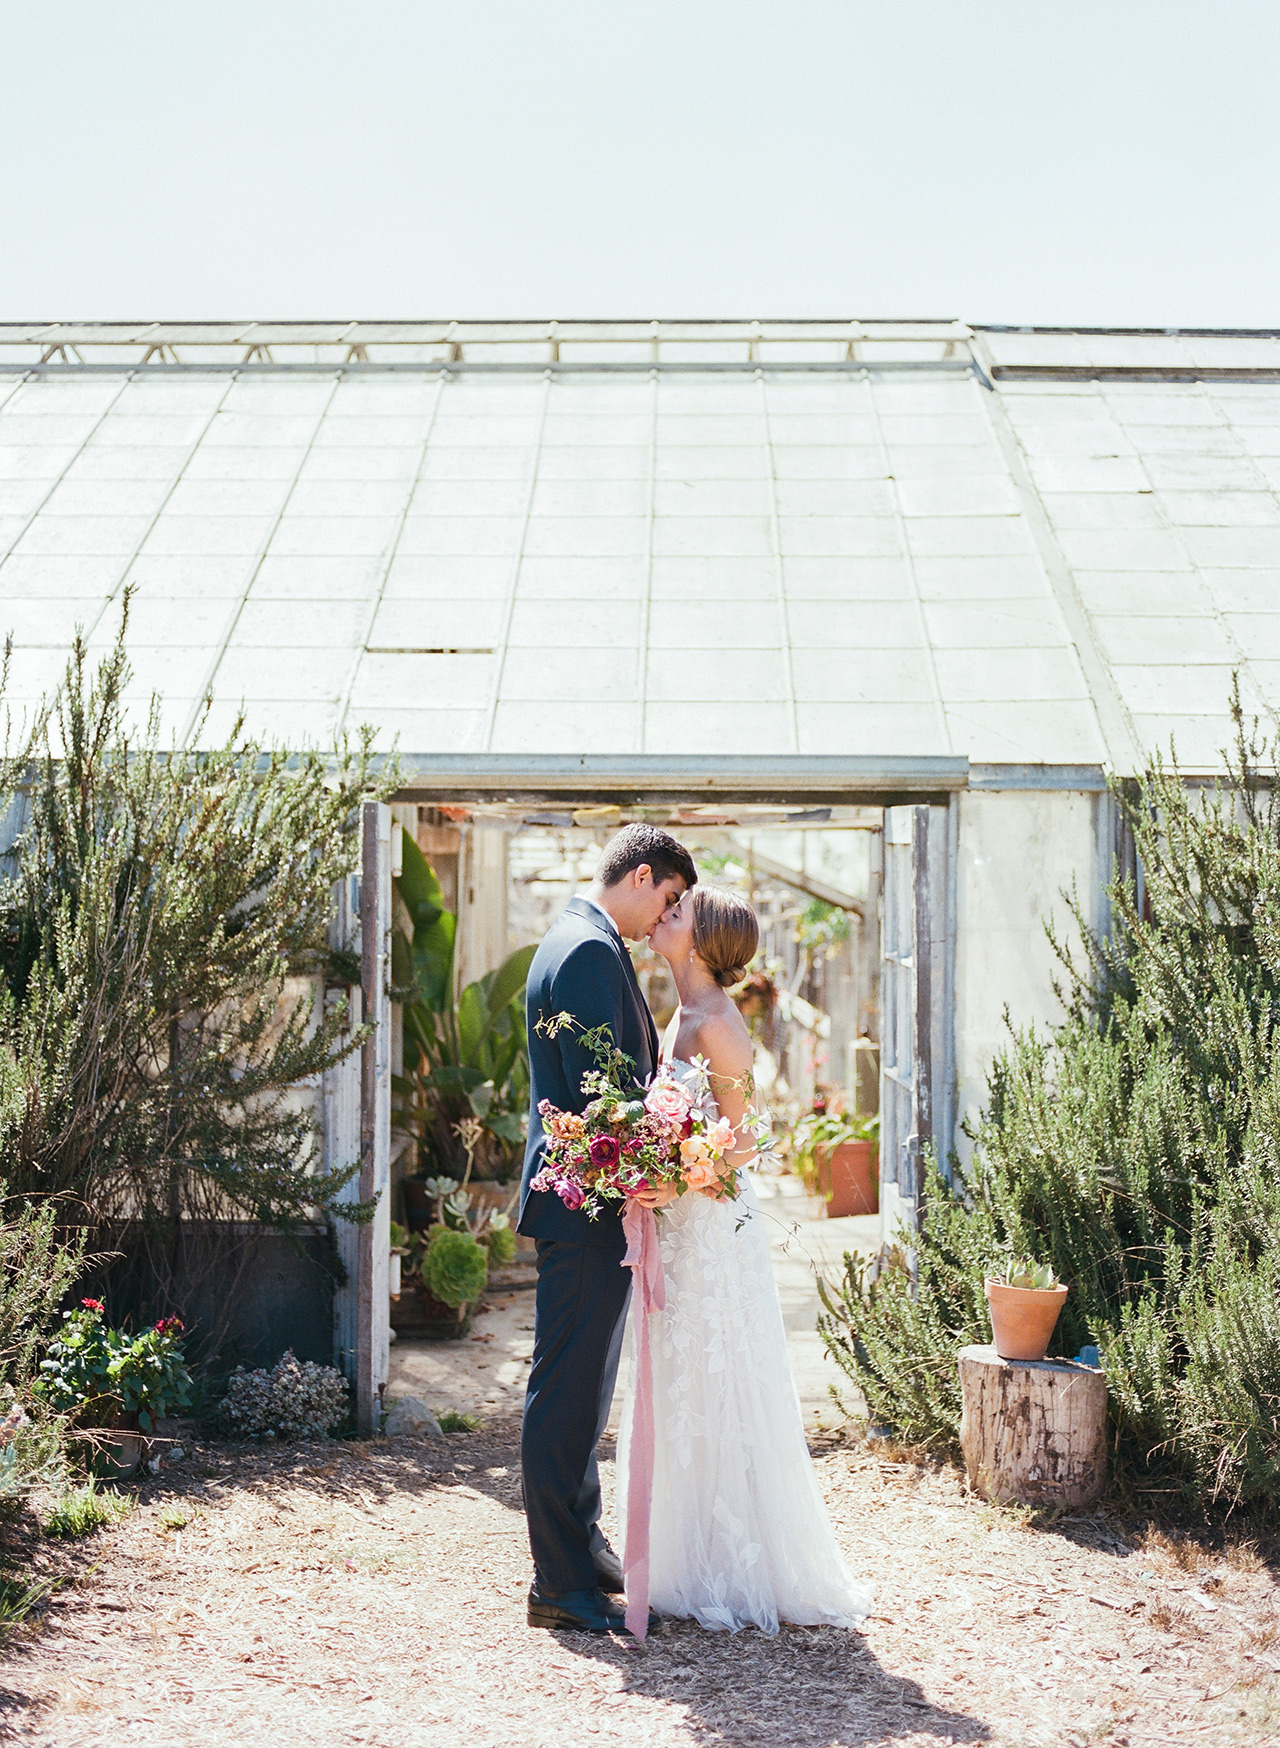 Here's What Happens When You Host an Elevated Garden Party Wedding Inside a Greenhouse